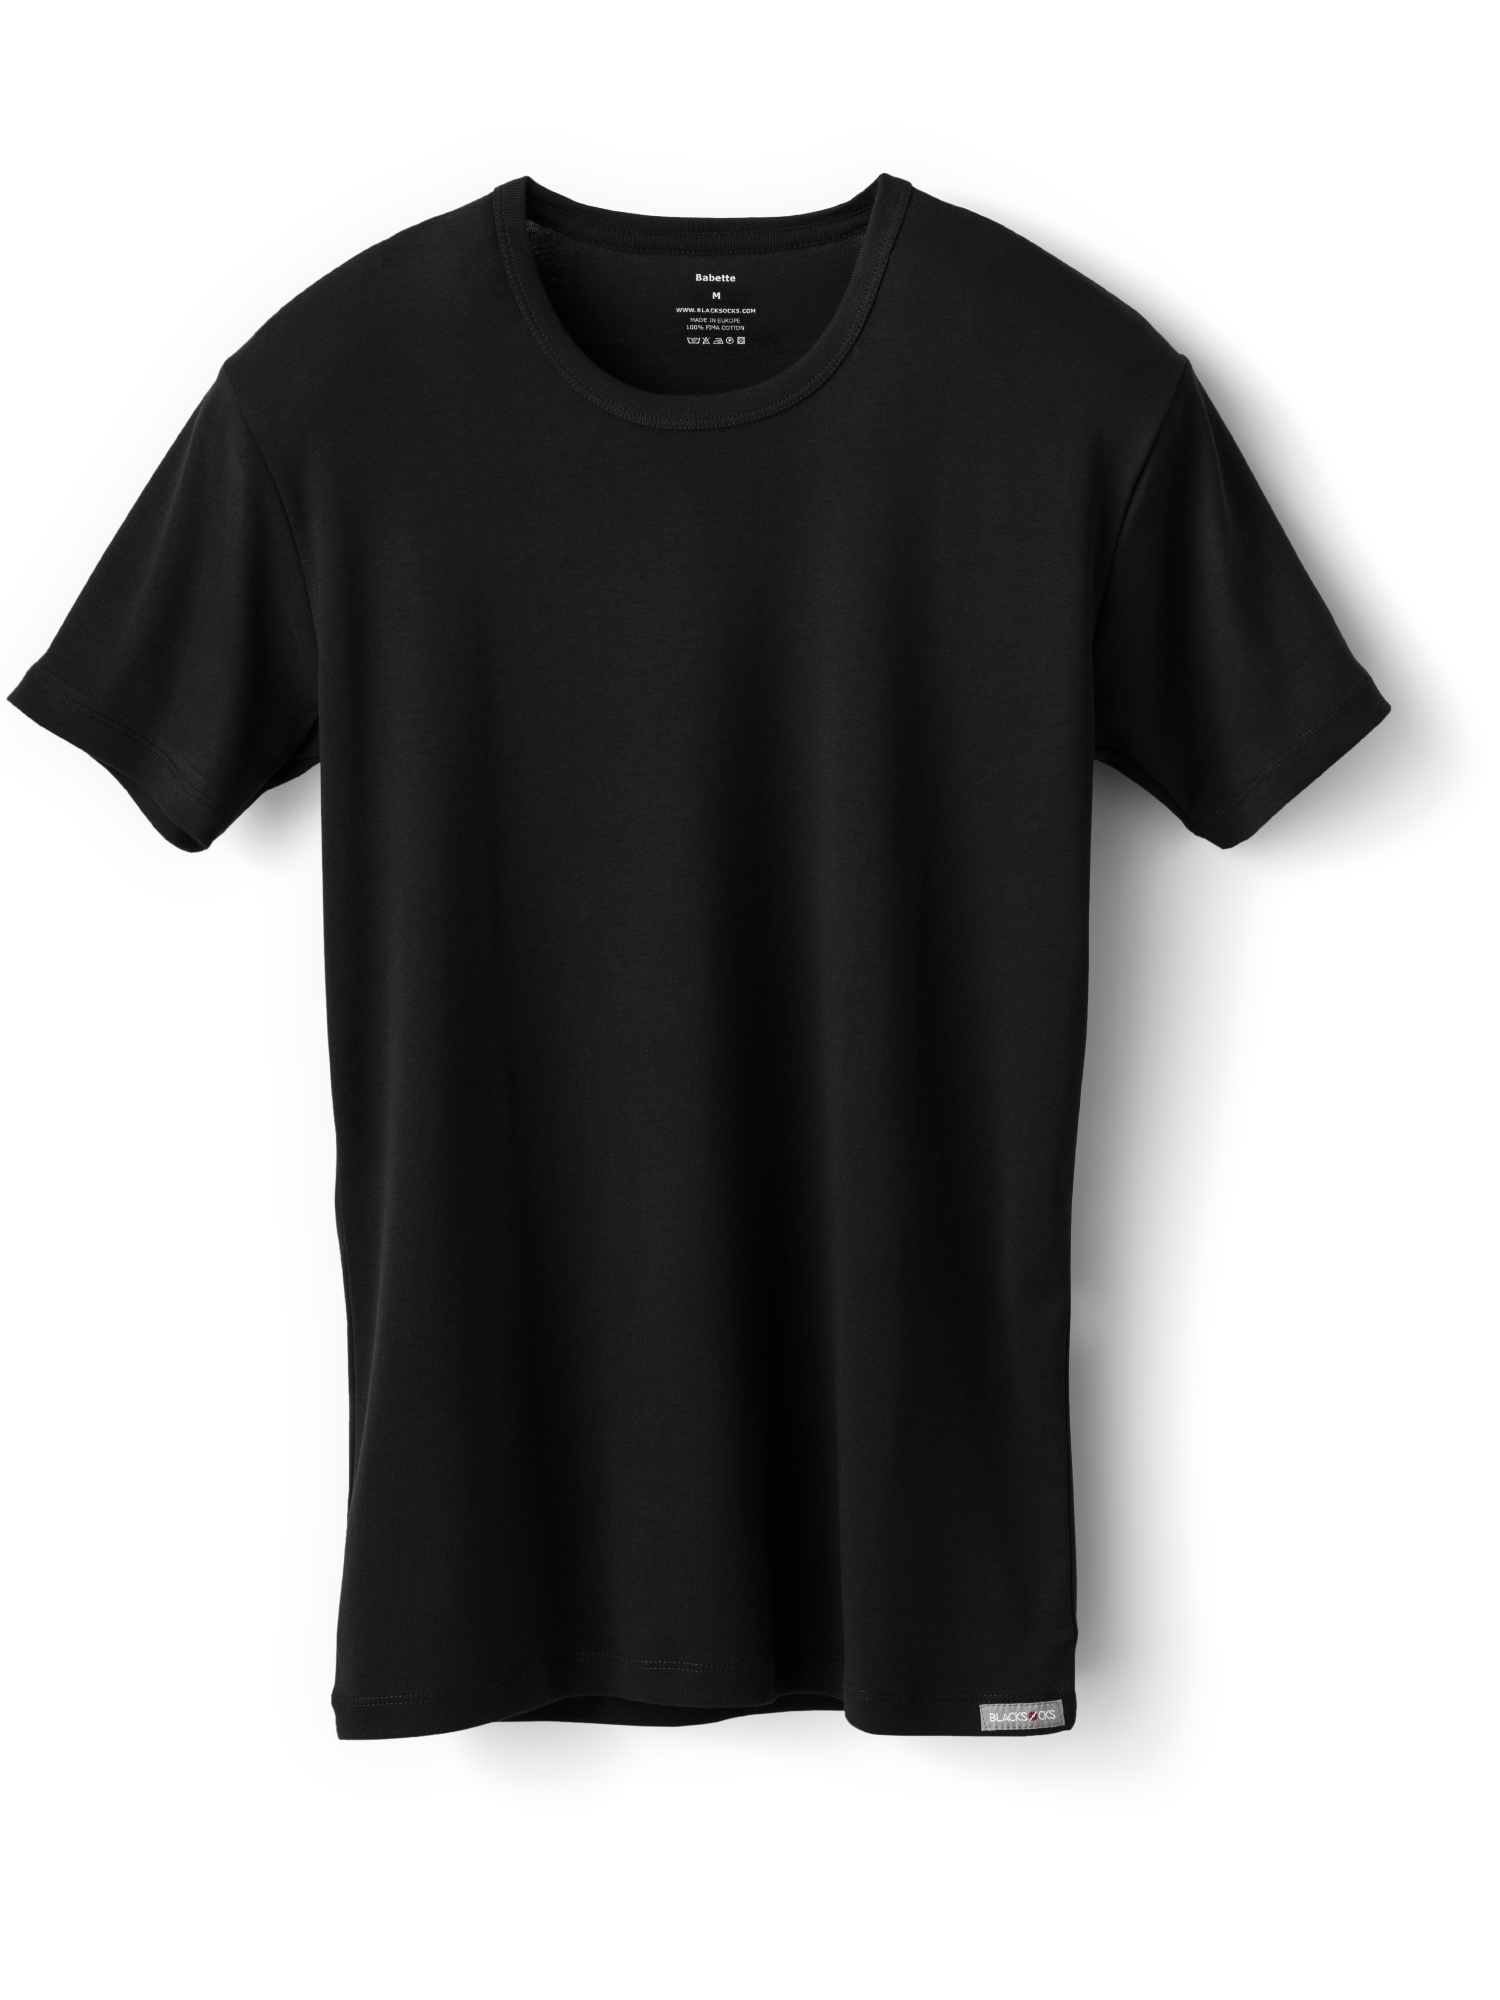 Transparent tshirt blackt. Babette t shirt comfortable